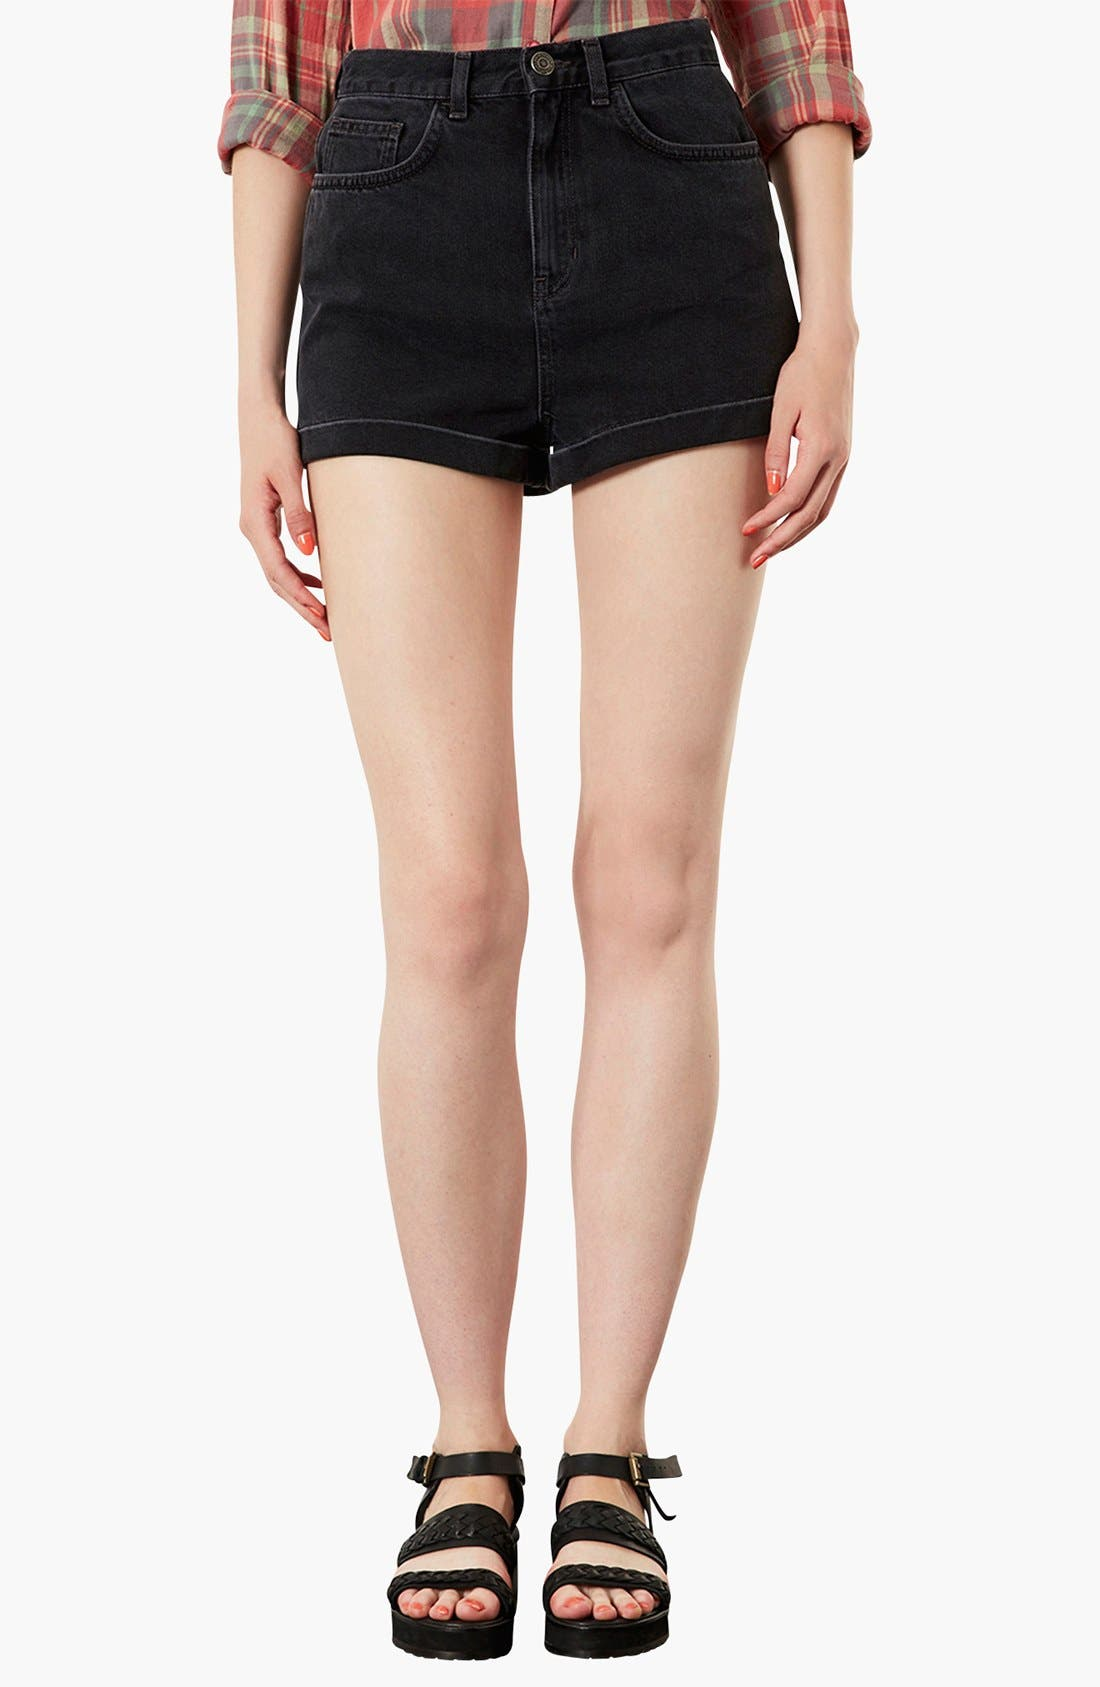 Alternate Image 1 Selected - Topshop Moto 'Mom' High Rise Denim Shorts (Black)